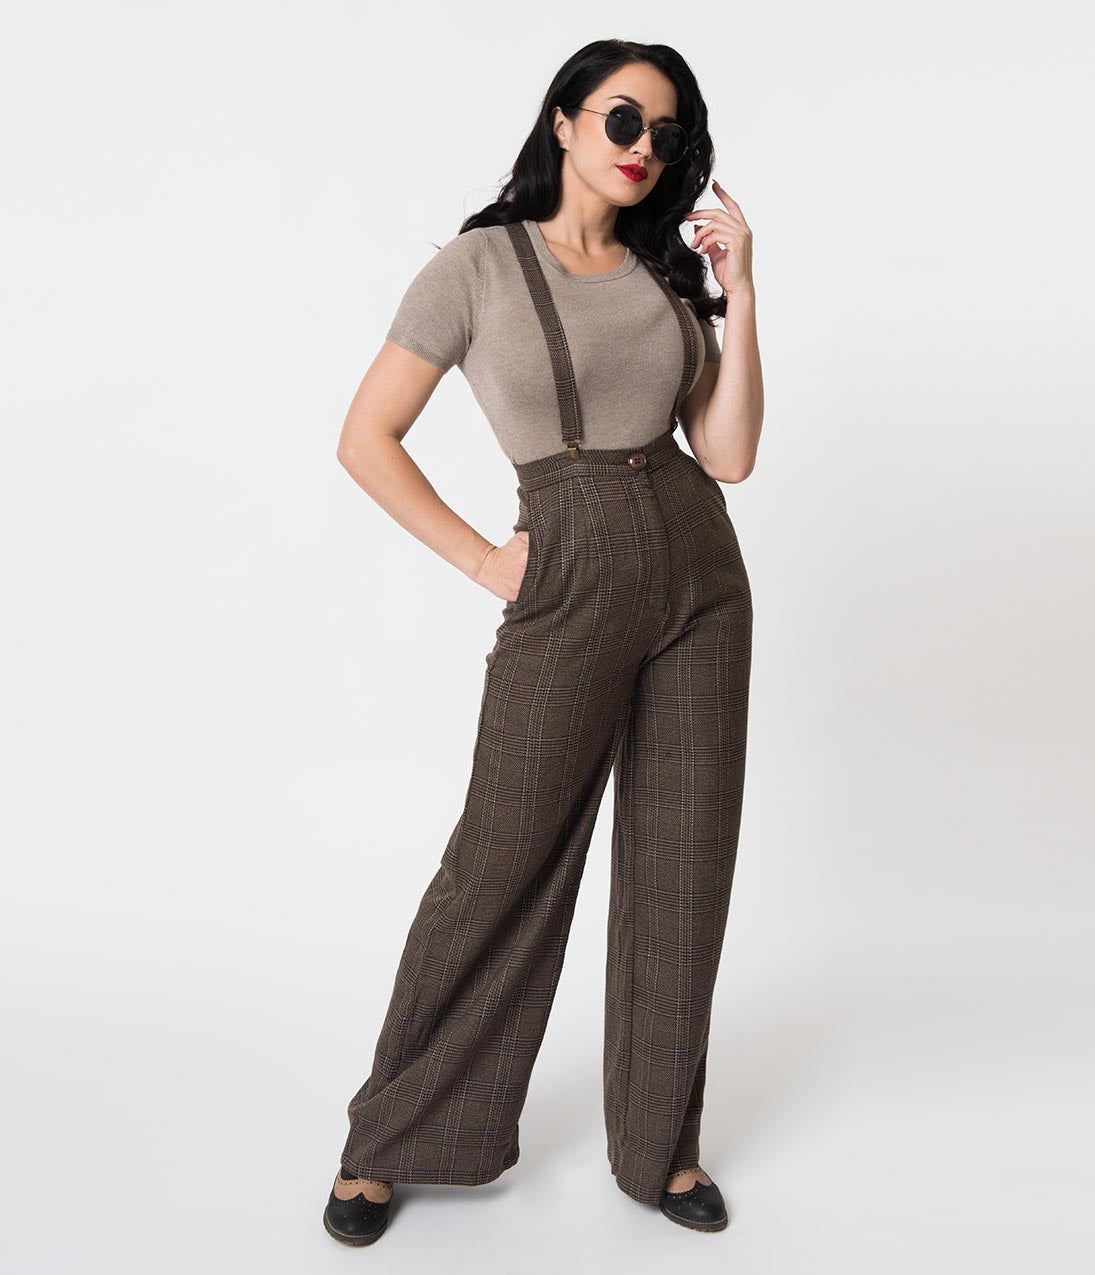 1940s Swing Pants & Sailor Trousers- Wide Leg, High Waist Collectif 1940S Style Brown Librarian Check High Waist Glinda Suspender Pants $58.00 AT vintagedancer.com